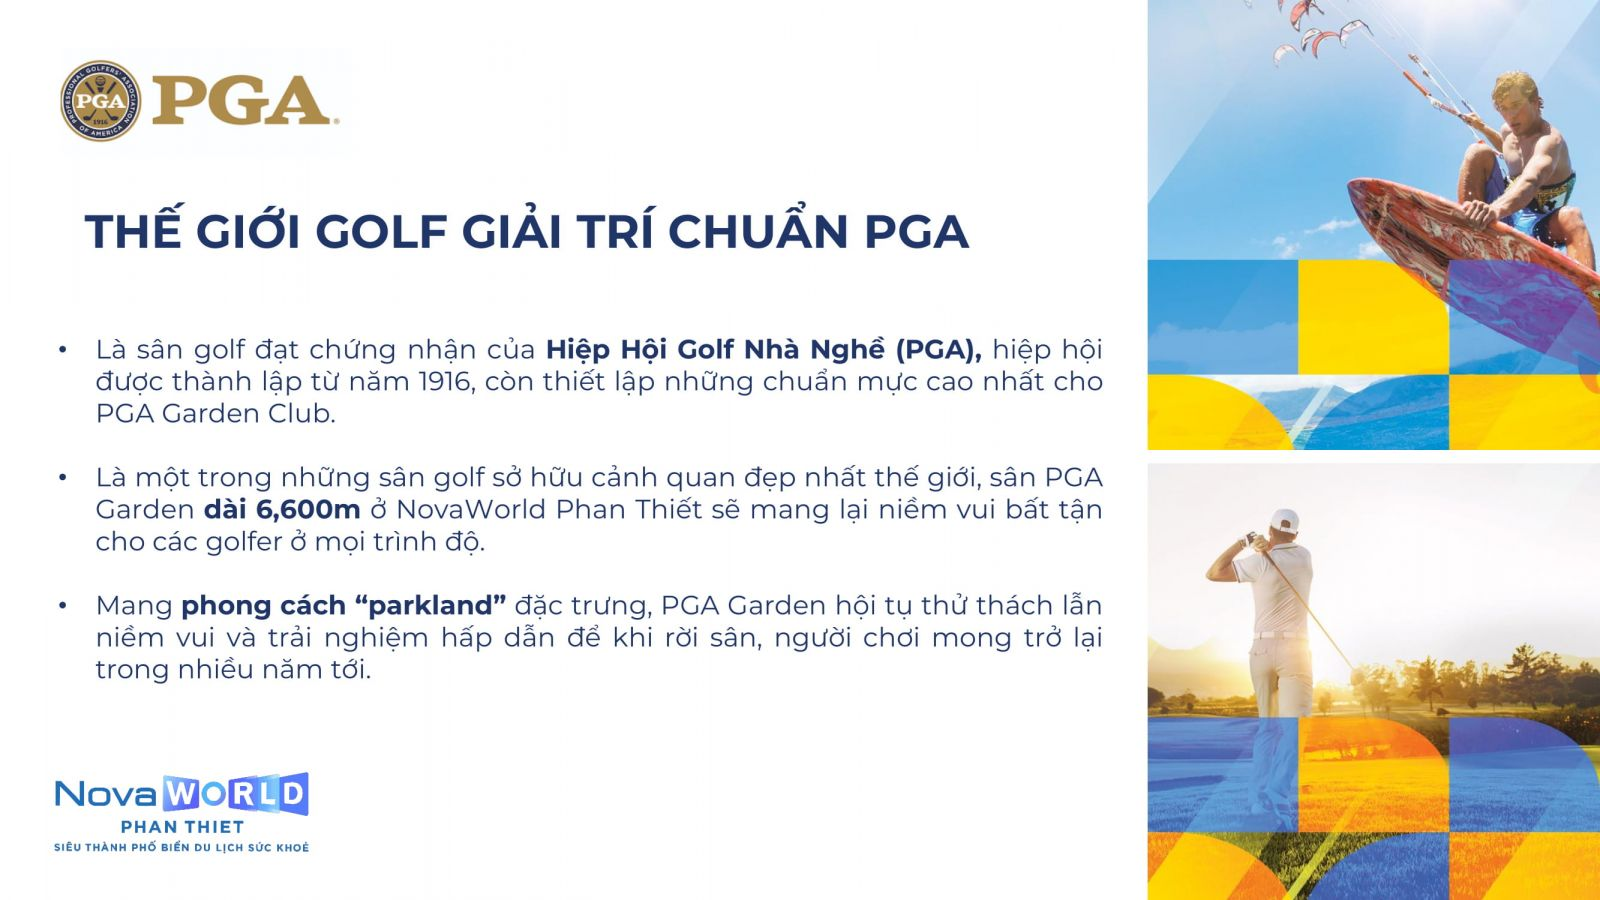 vila golf novaworld phan thiet